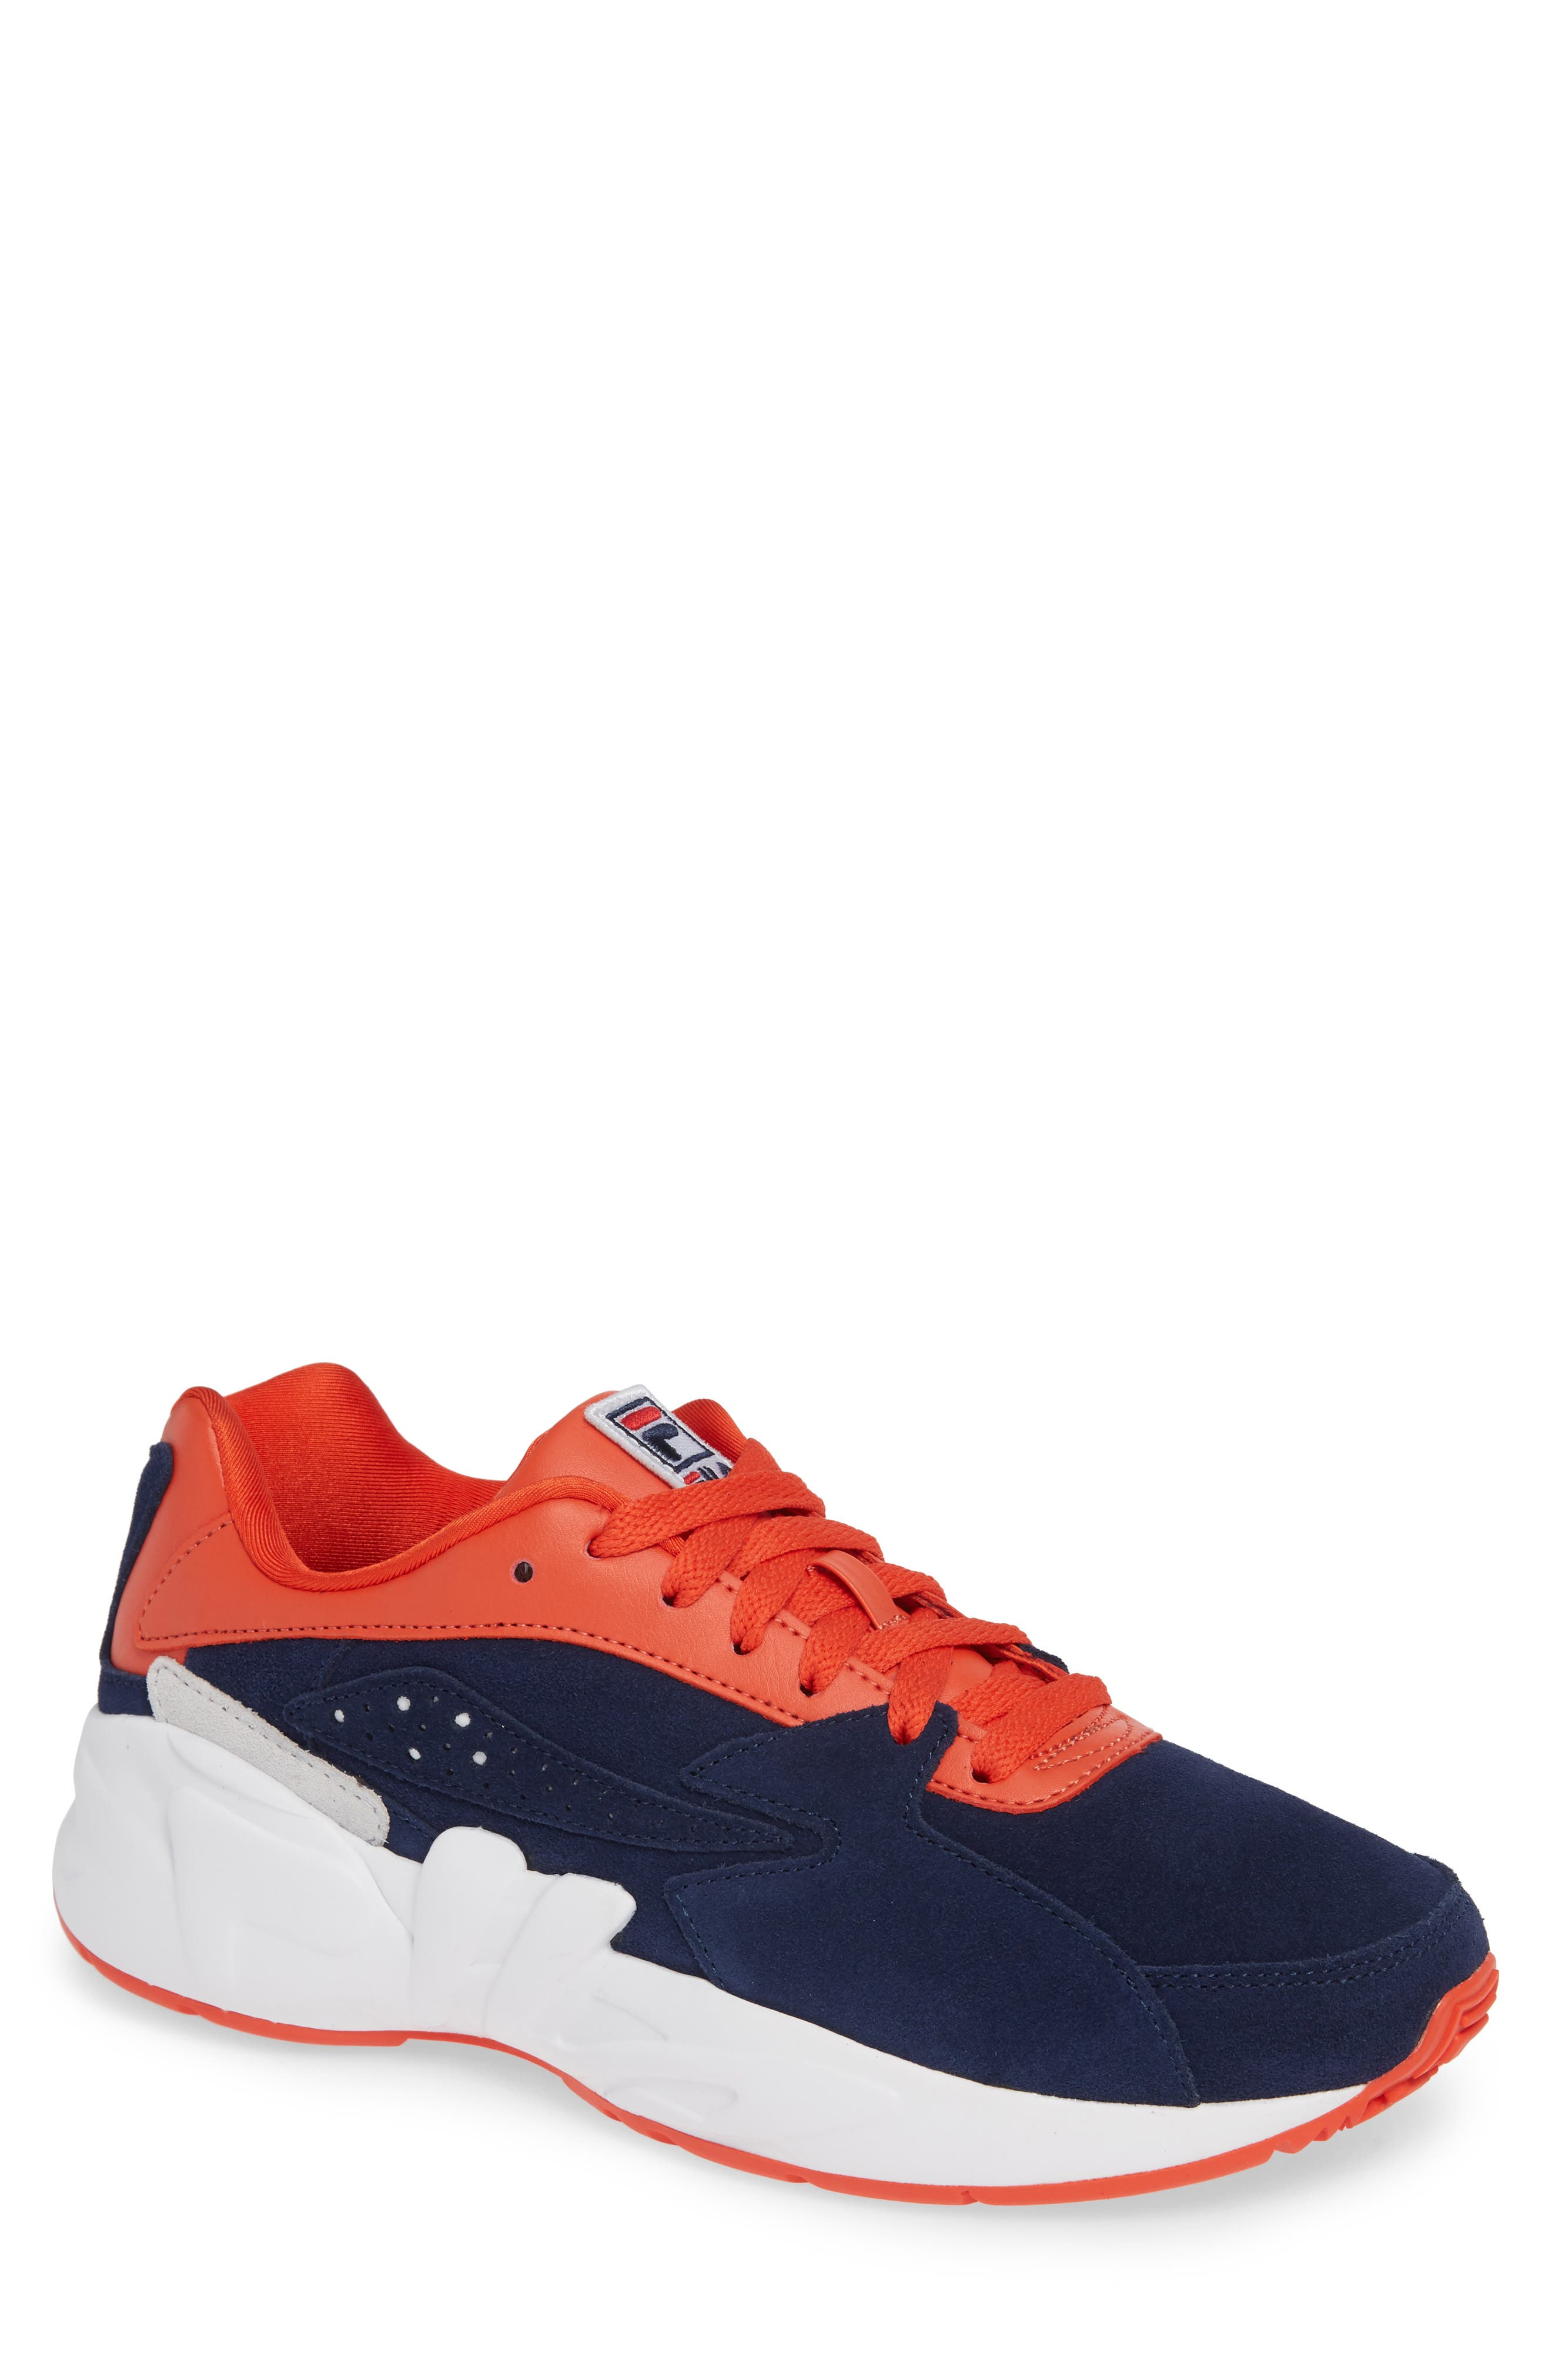 Mindblower Sneaker,                             Main thumbnail 1, color,                             NAVY/ WHITE/ RED